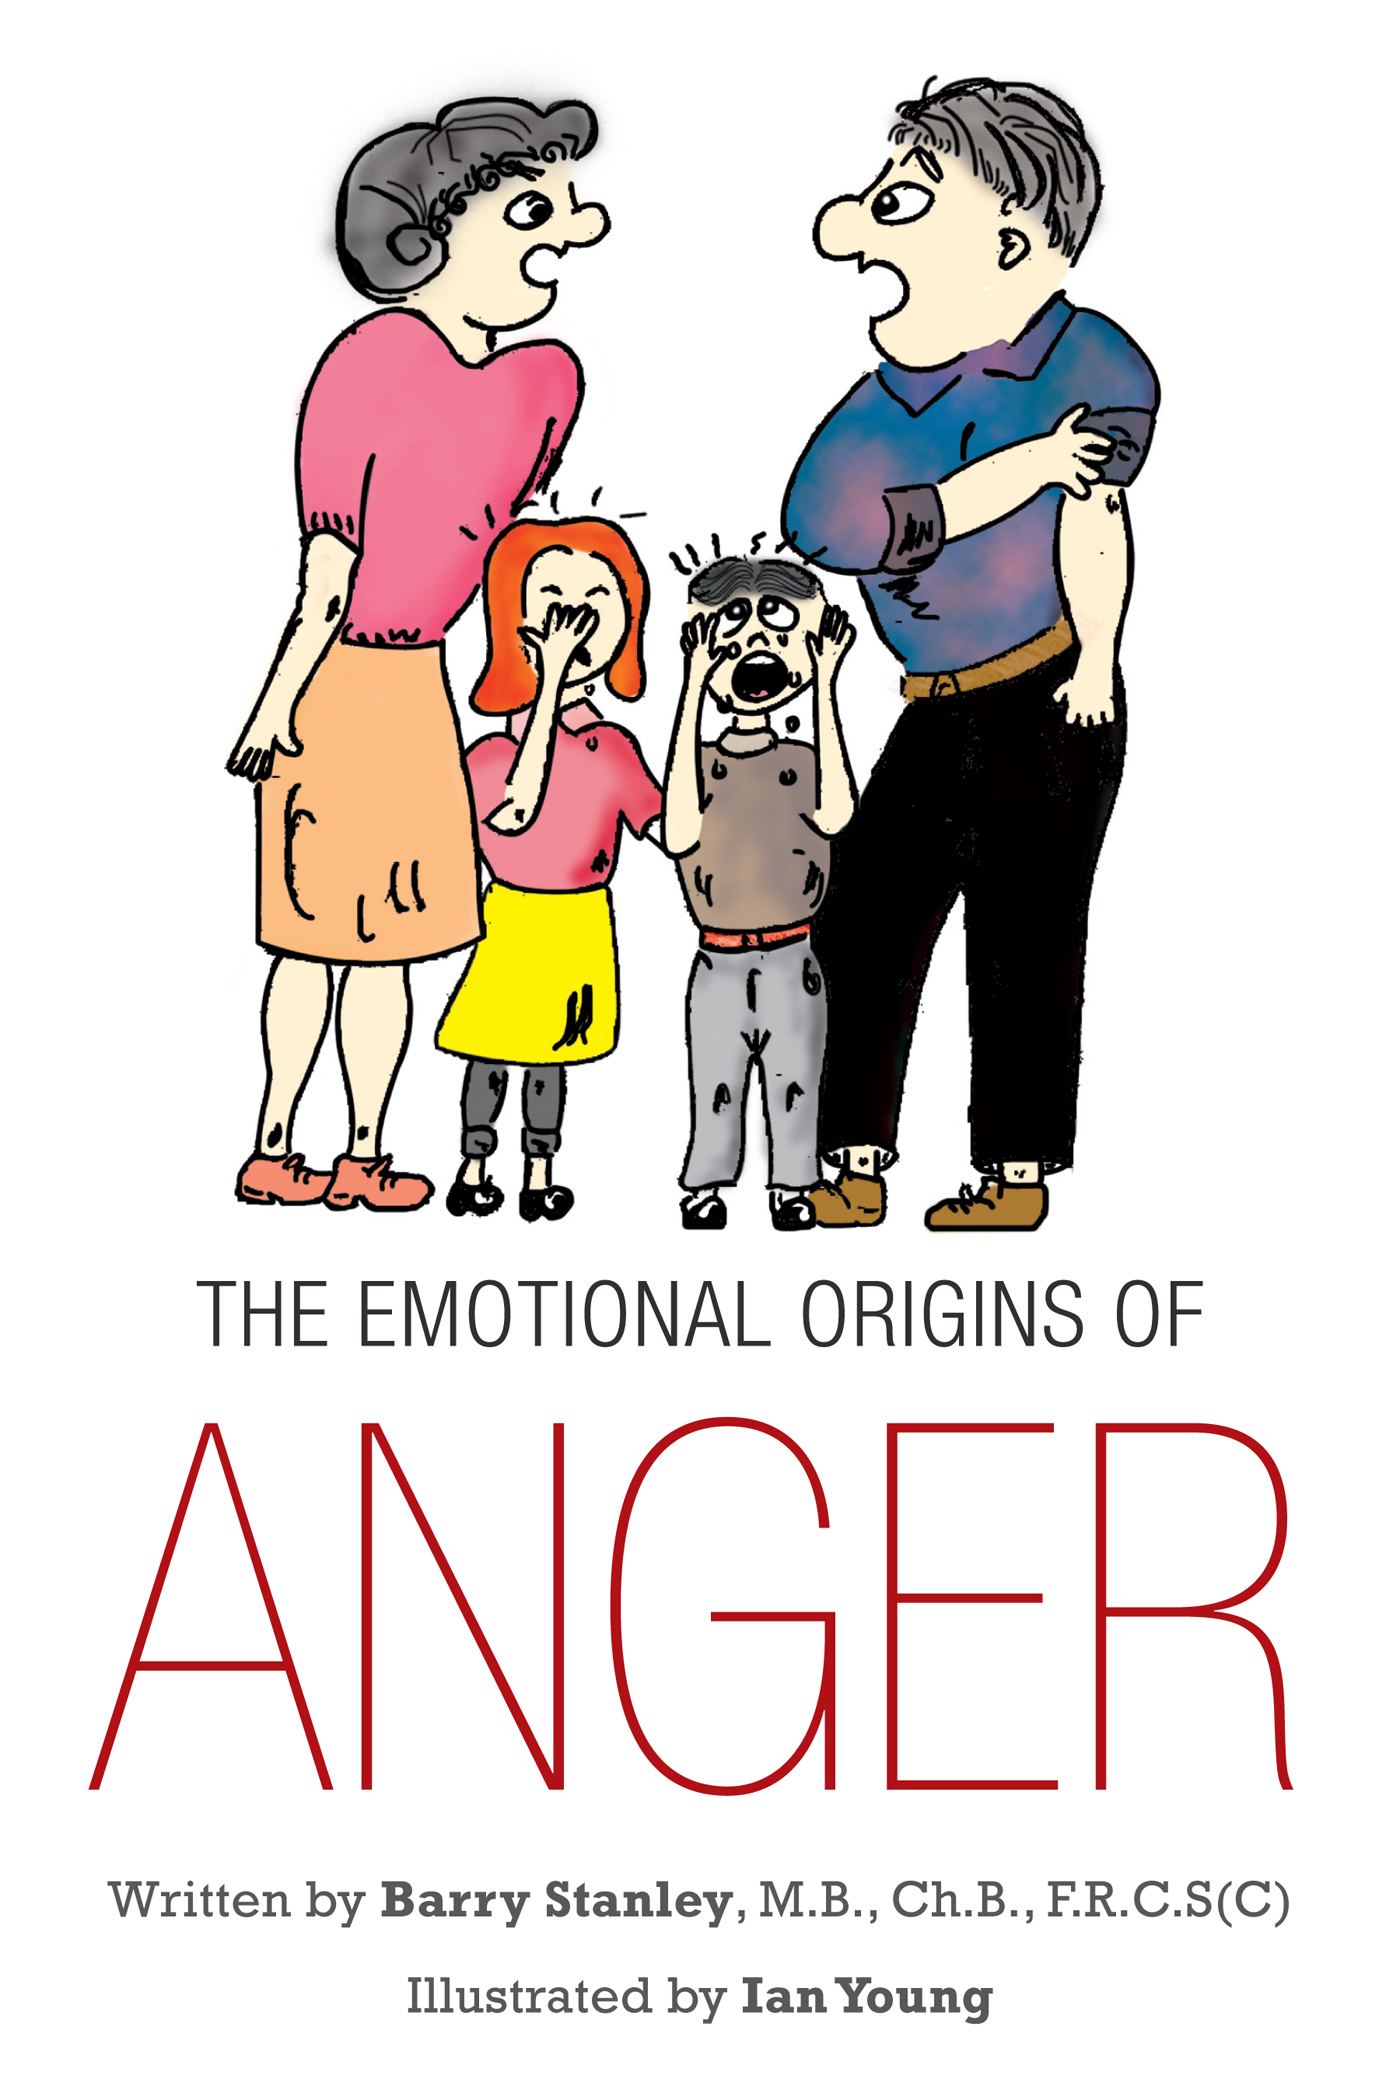 THE EMOTIONAL ORIGINS OF ANGER